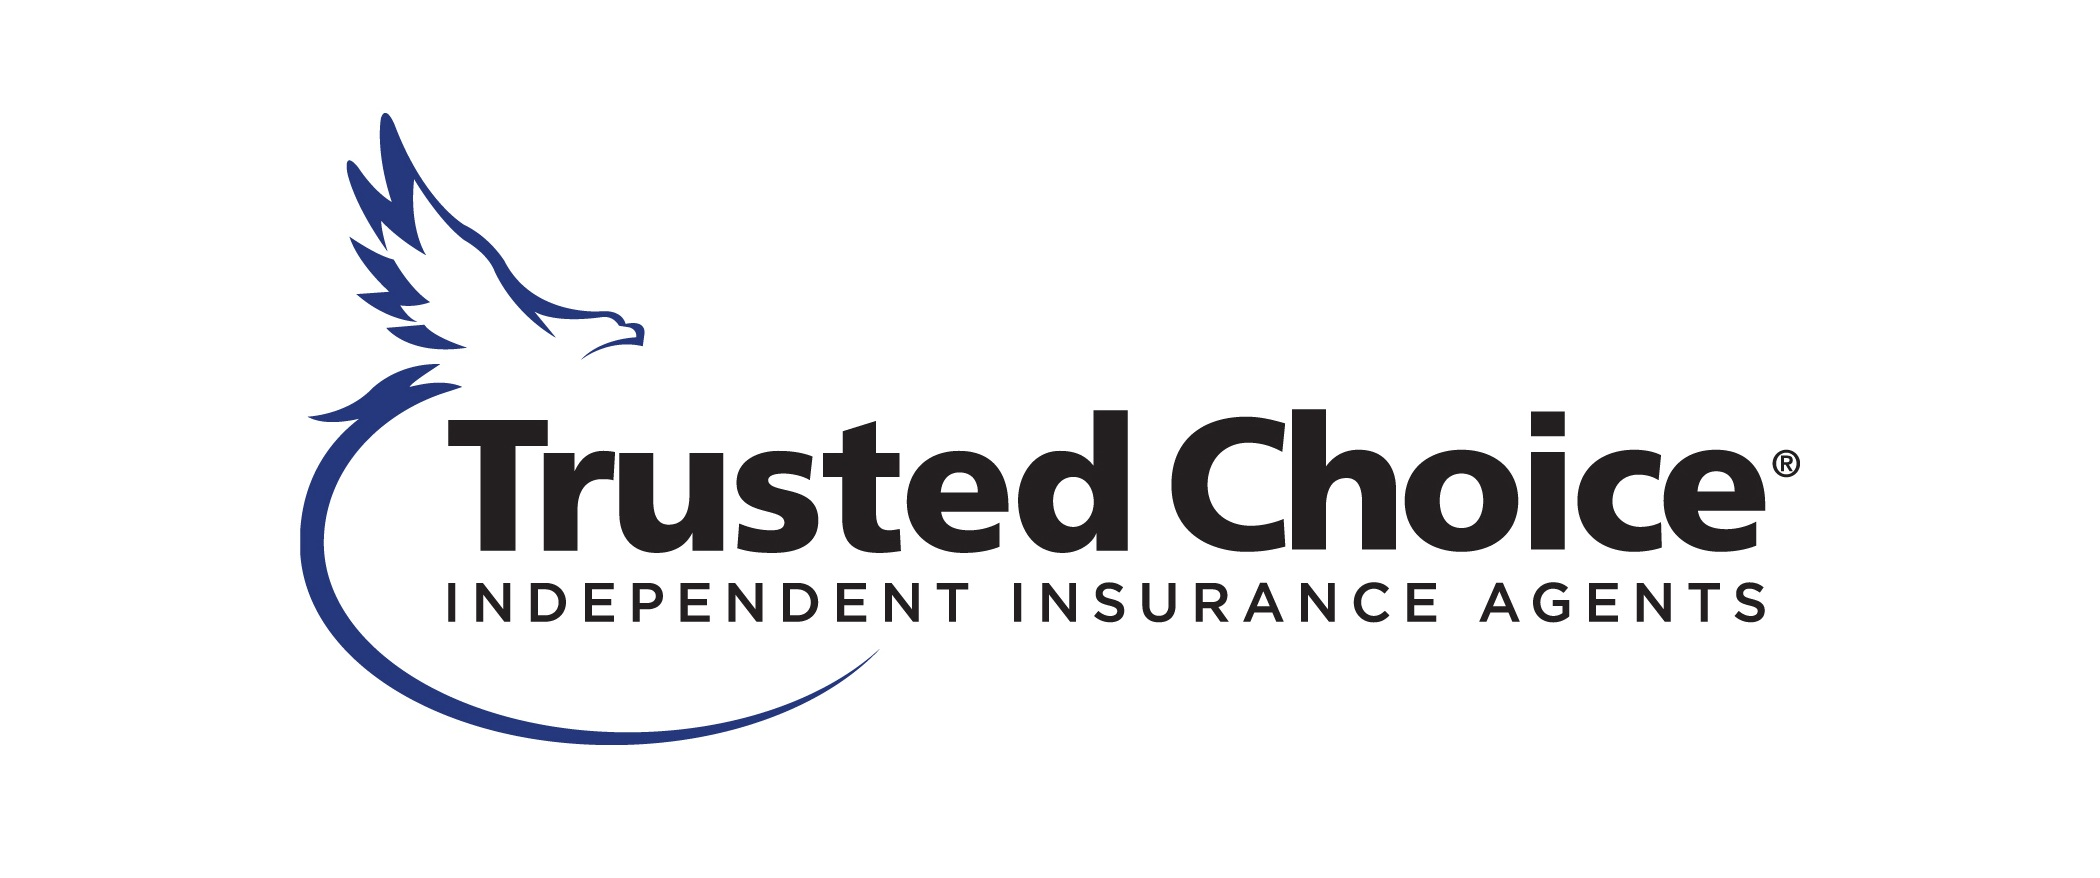 Trusted-Choice-Logo.jpg